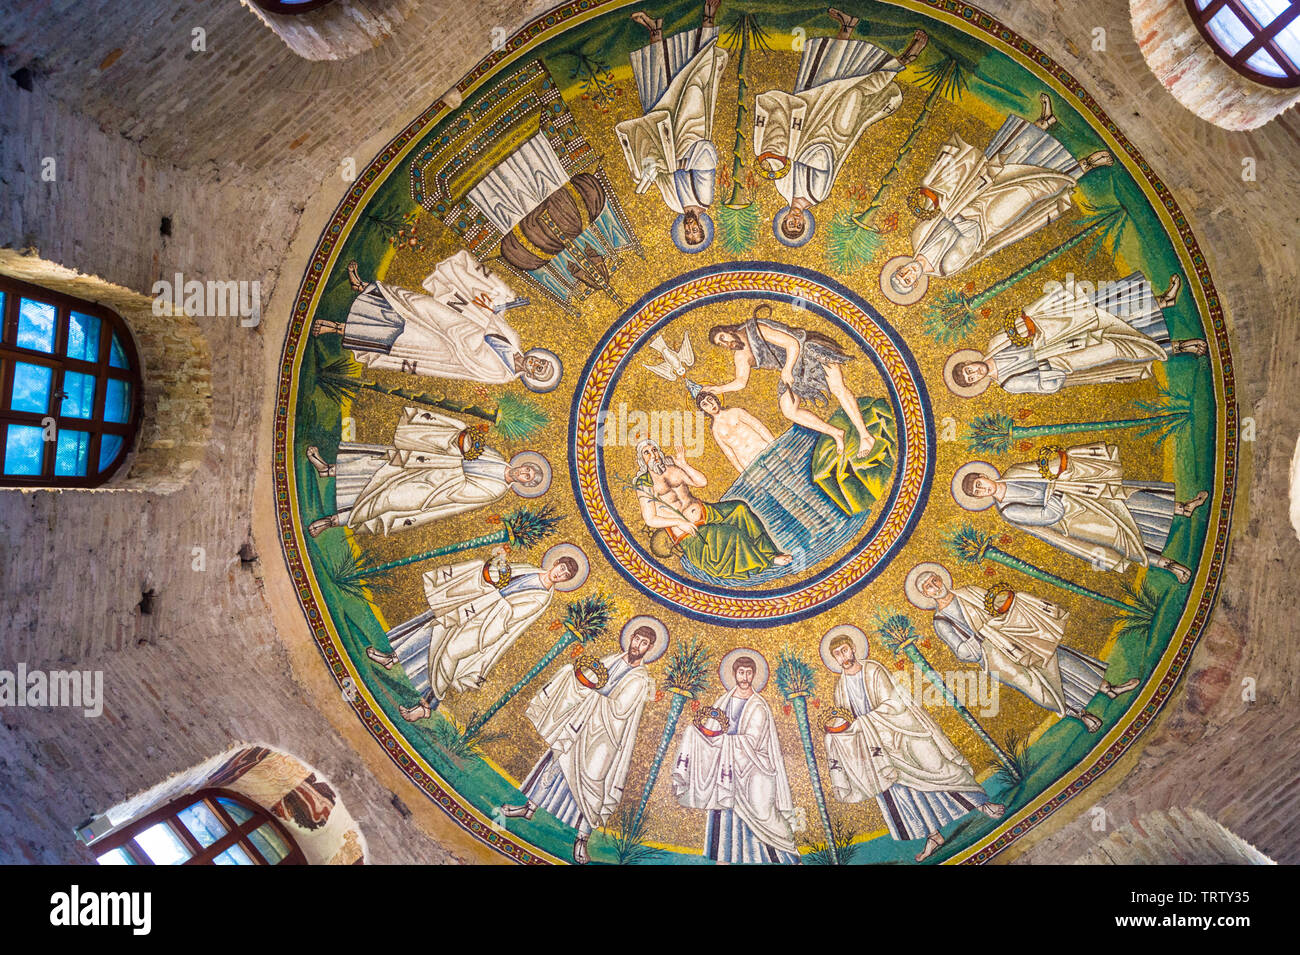 mosaics-of-baptism-of-christ-with-john-the-baptist-and-apostles-arian-baptistery-c-500ad-ravenna-emilia-romagna-italy-TRTY35.jpg